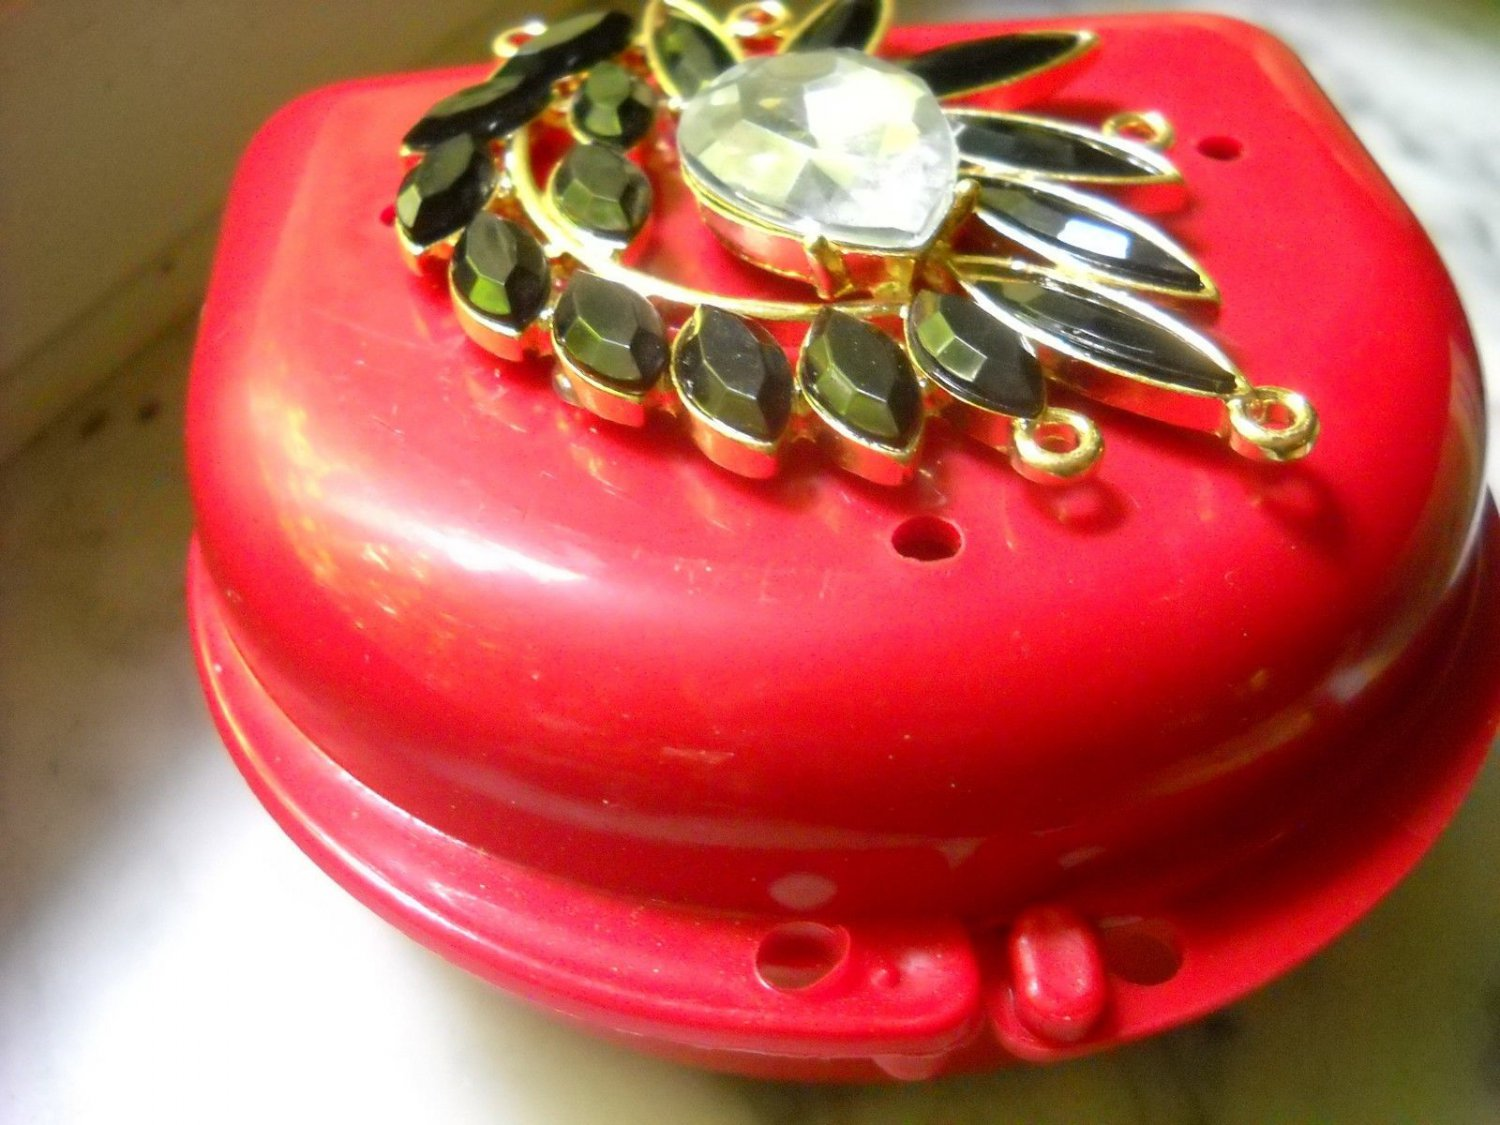 Bling Denture Red Case Black Gem Jewelry Pretty Woman Partial Bridge Retainer